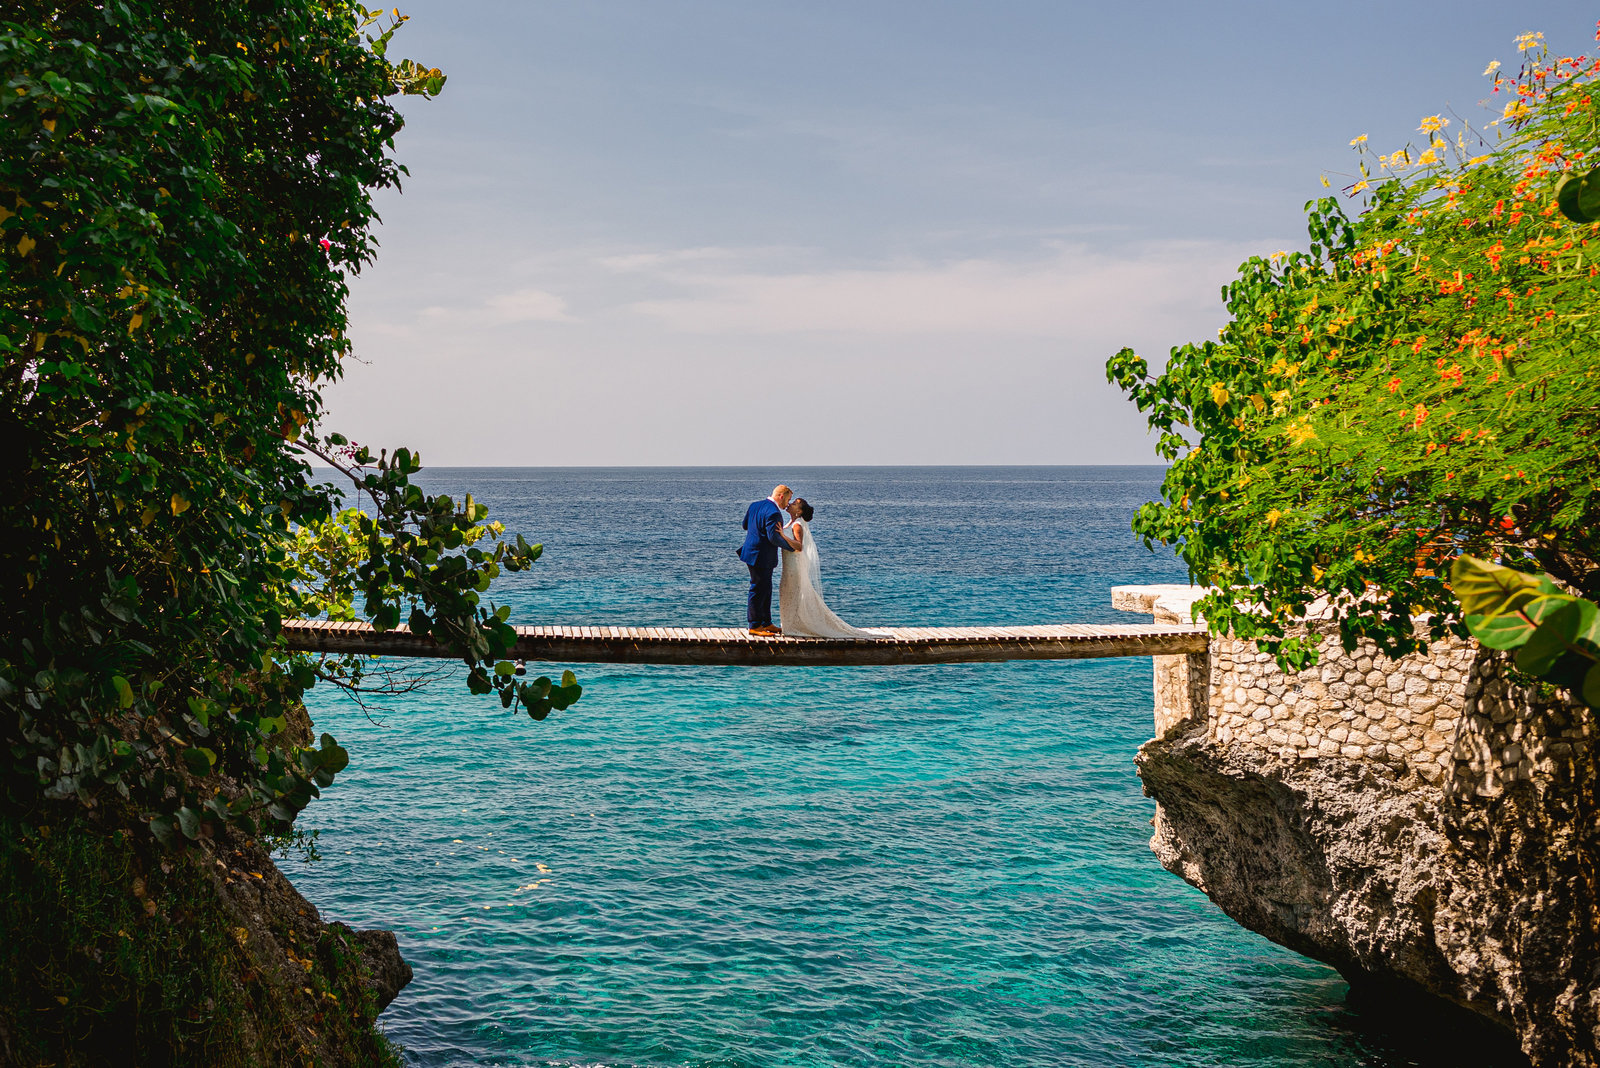 Bride & groom on a bridge in Negril Jamaica kissing